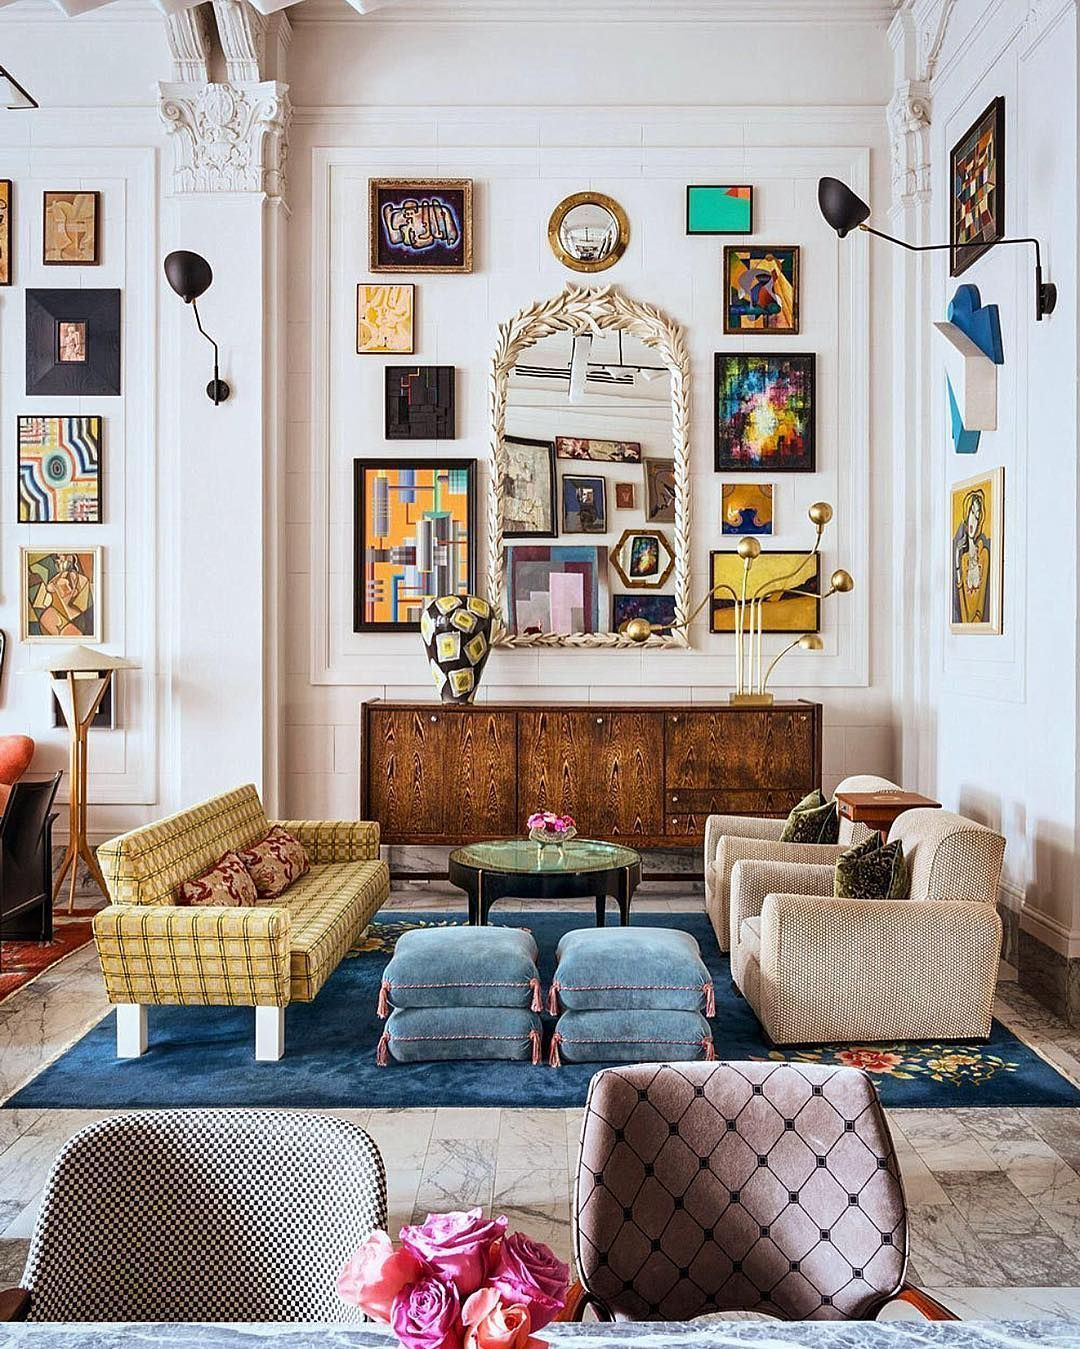 Best Of Interior Design And Architecture Ideas Eclectic Living Room Living Room Decor Interior Living room ideas eclectic